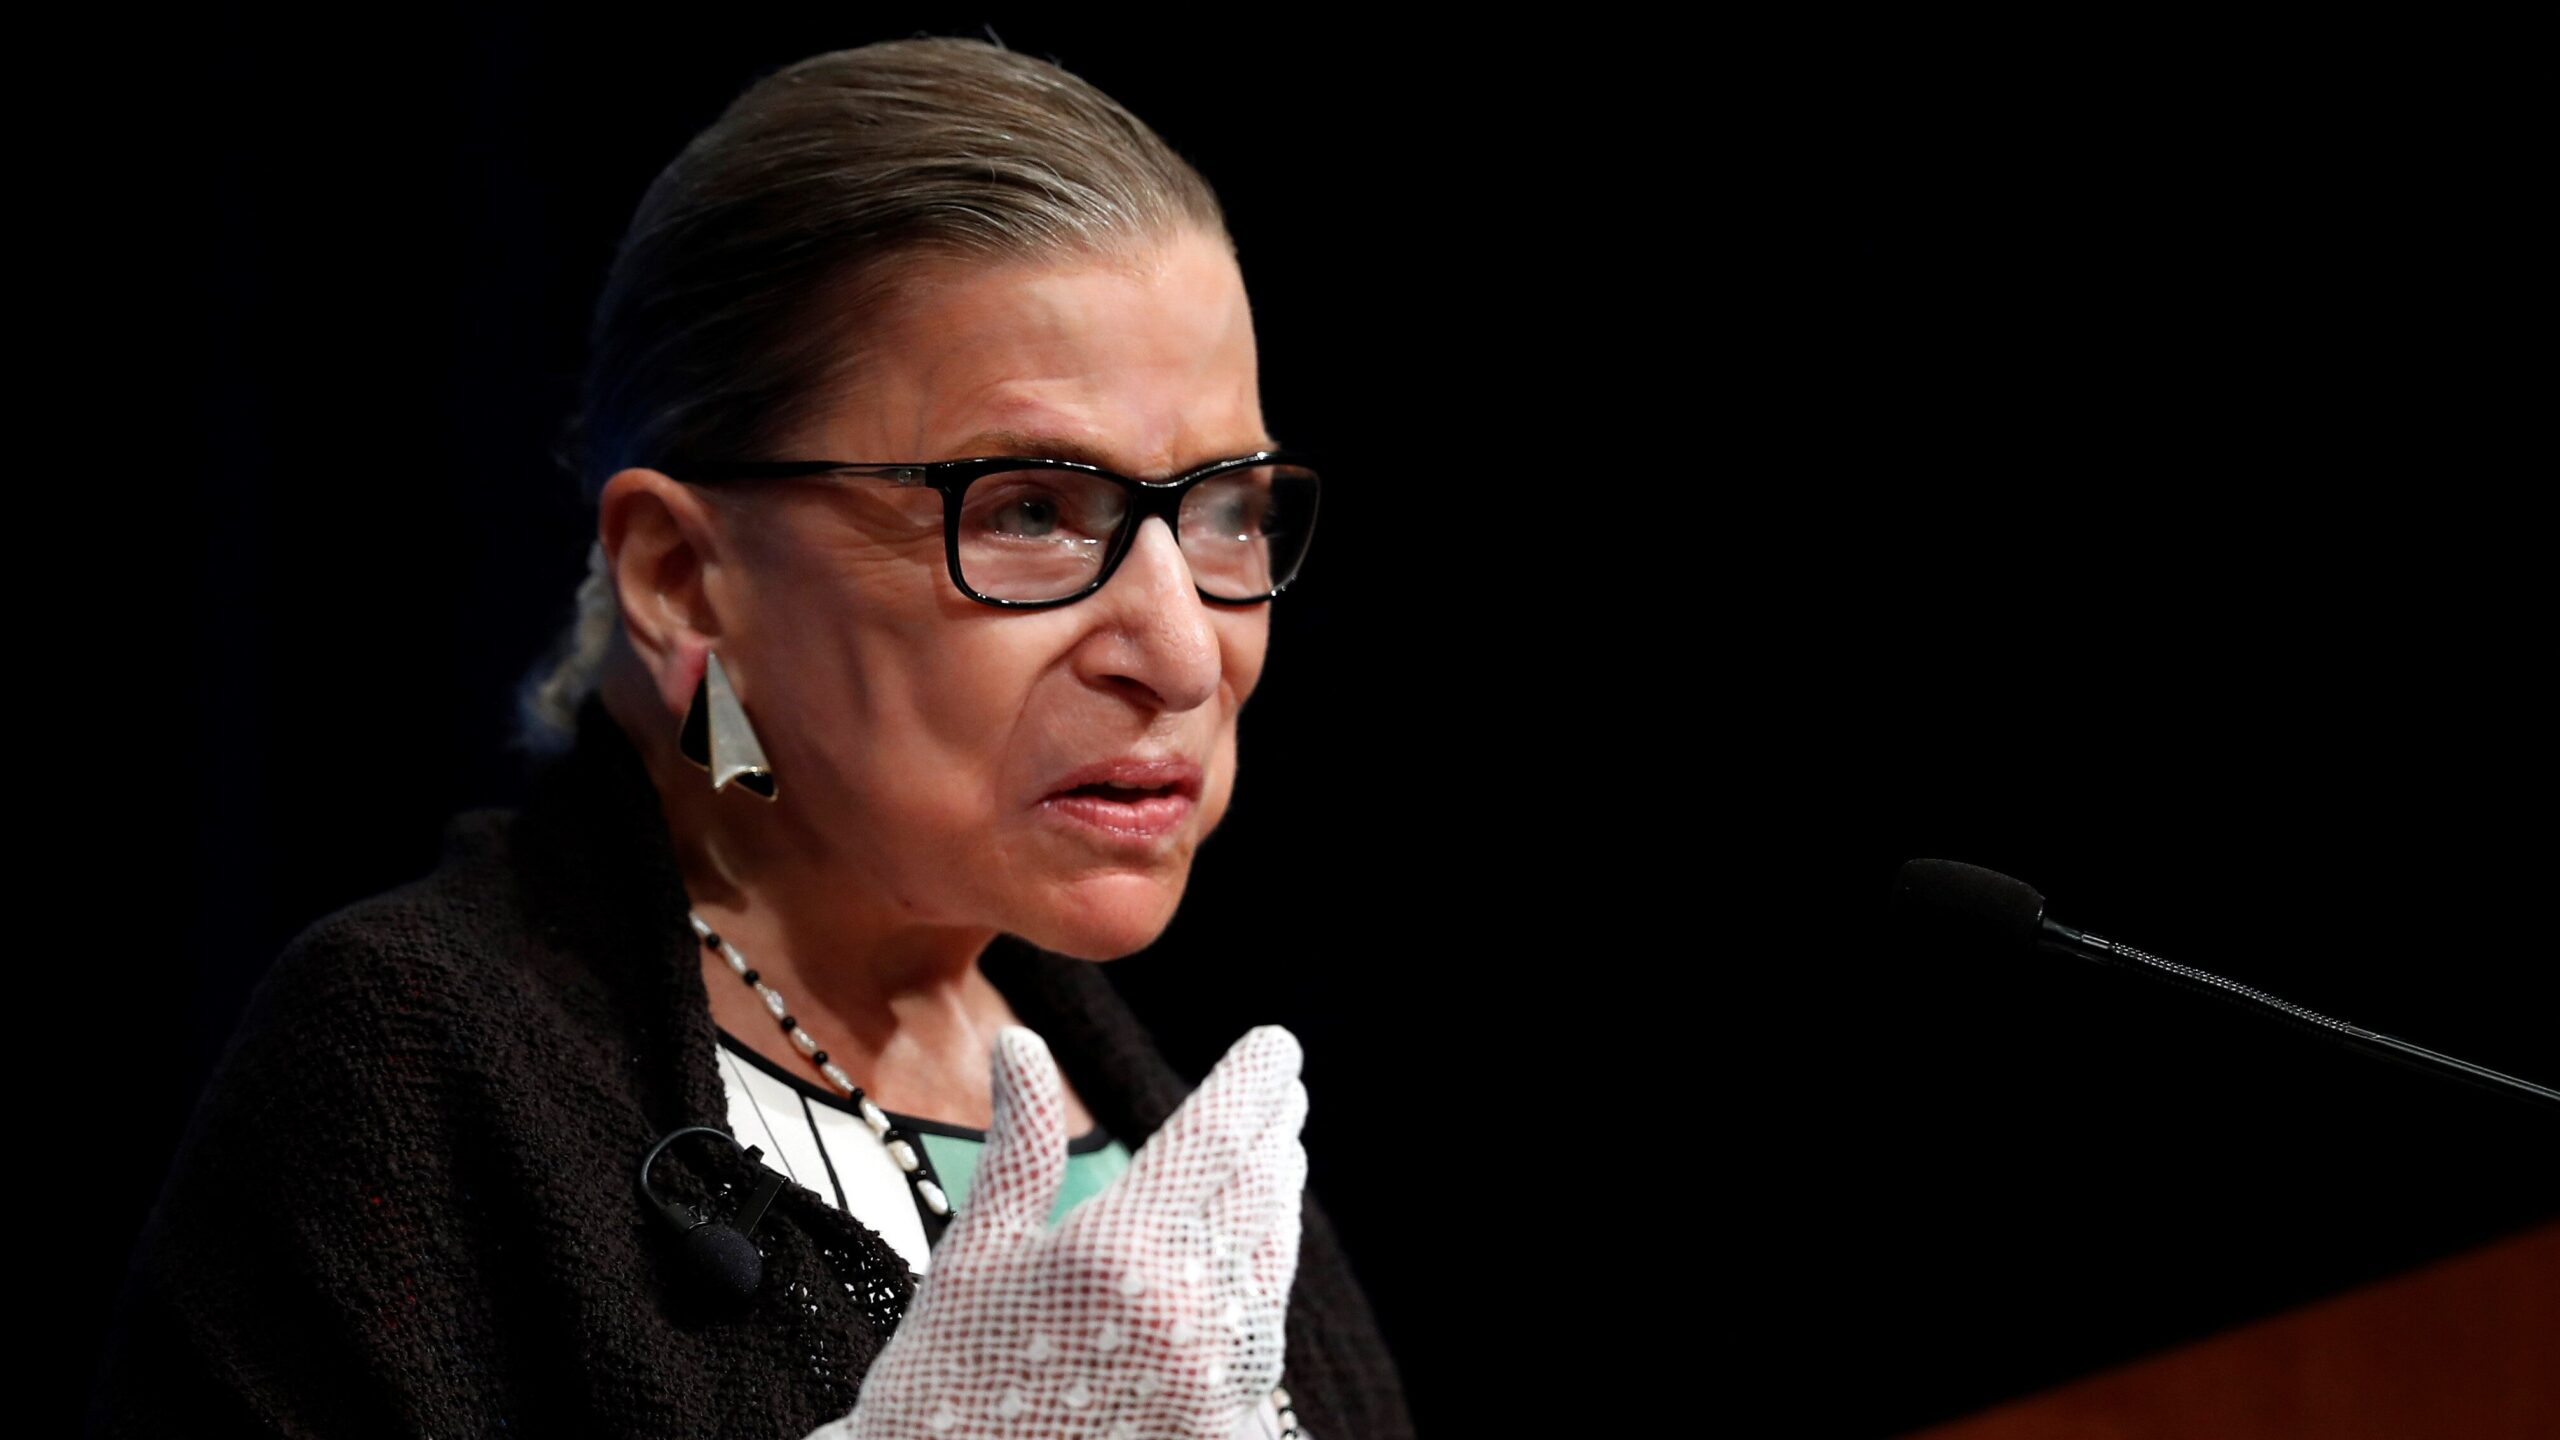 Conservative ad uses RBG's words to argue for replacing her quickly